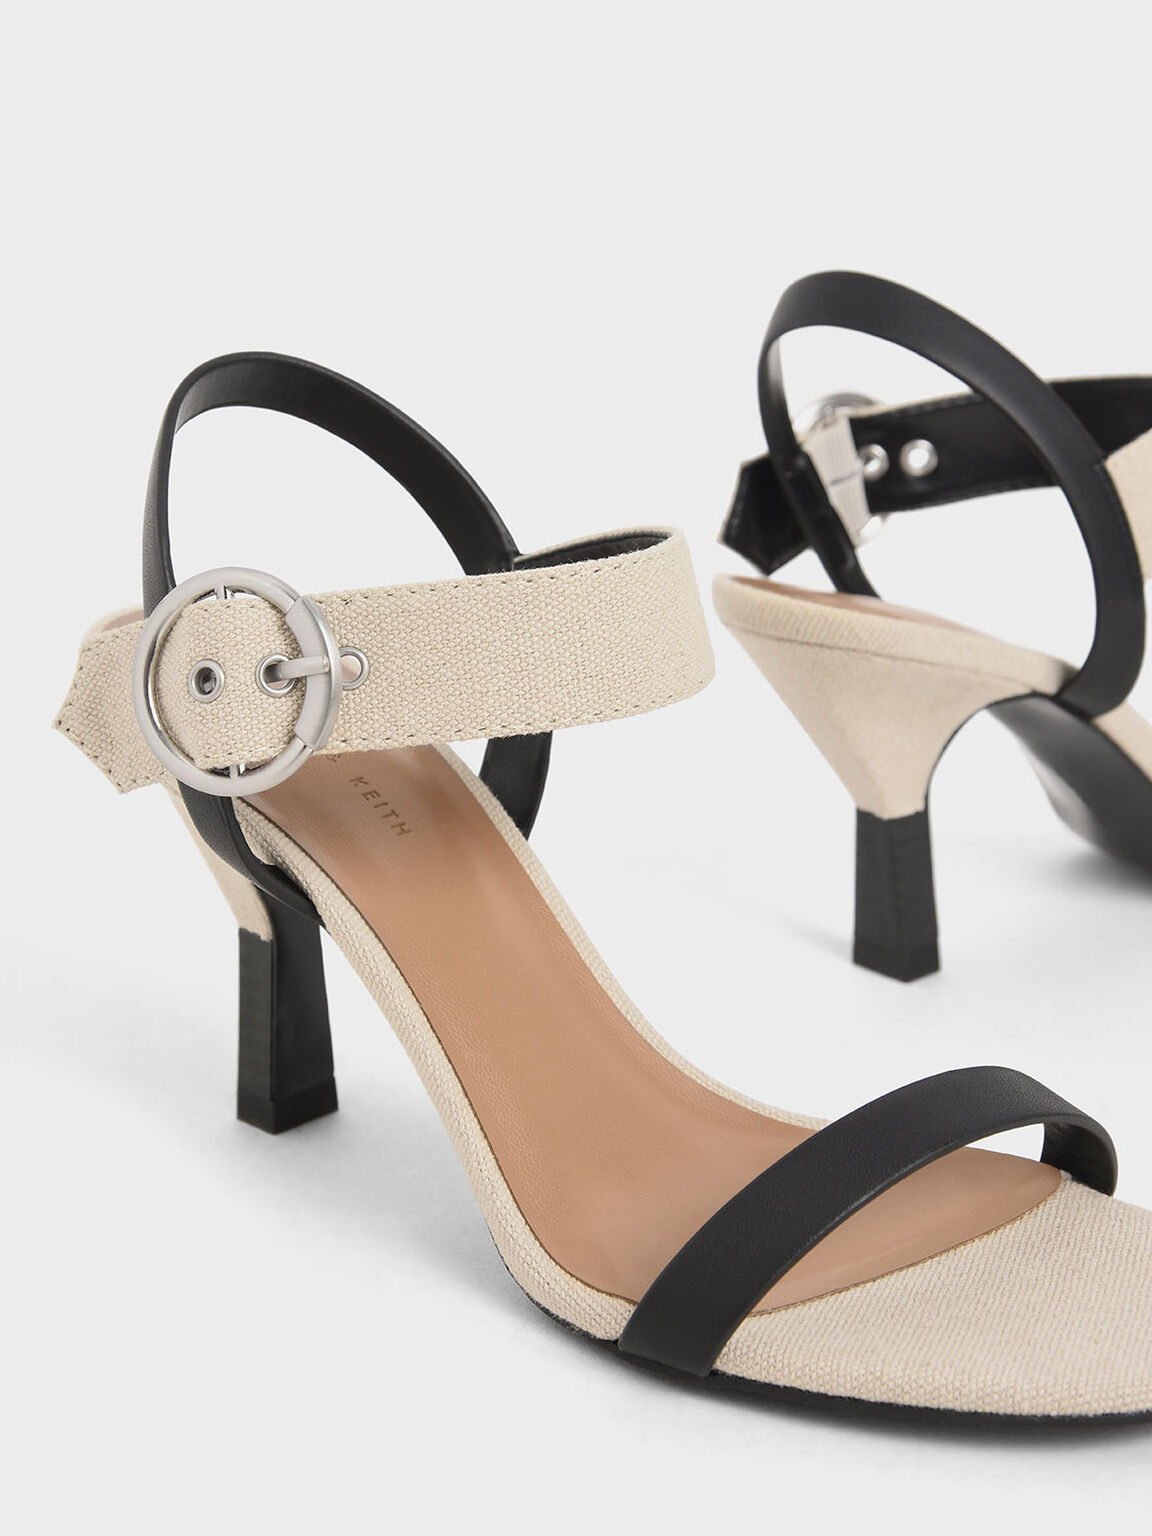 Oversized Buckle Two-Tone Heeled Sandals, Beige, hi-res